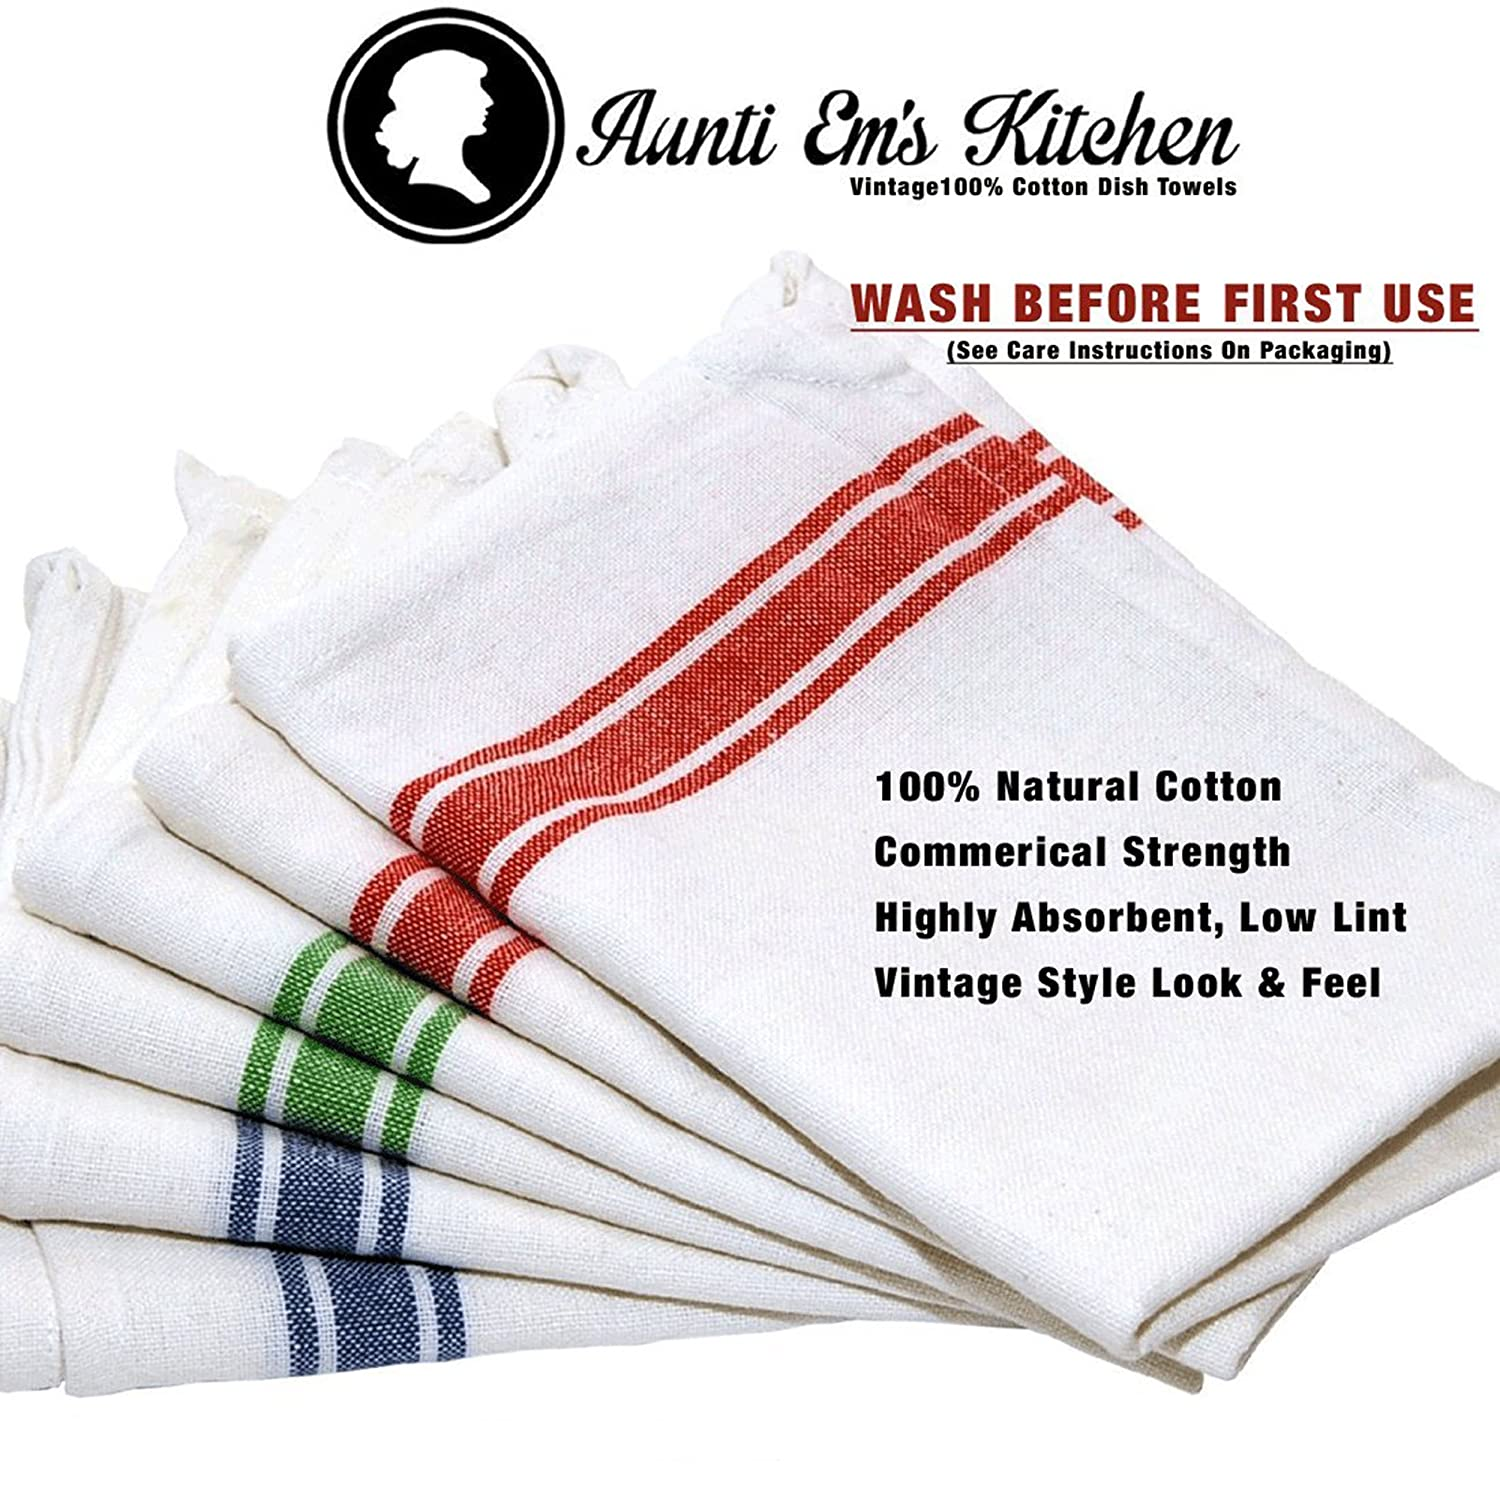 amazoncom kitchen dish towels with vintage design for kitchen decor super absorbent 100 natural cotton kitchen towels size 255 x 155 inches white - Kitchen Towels New Design